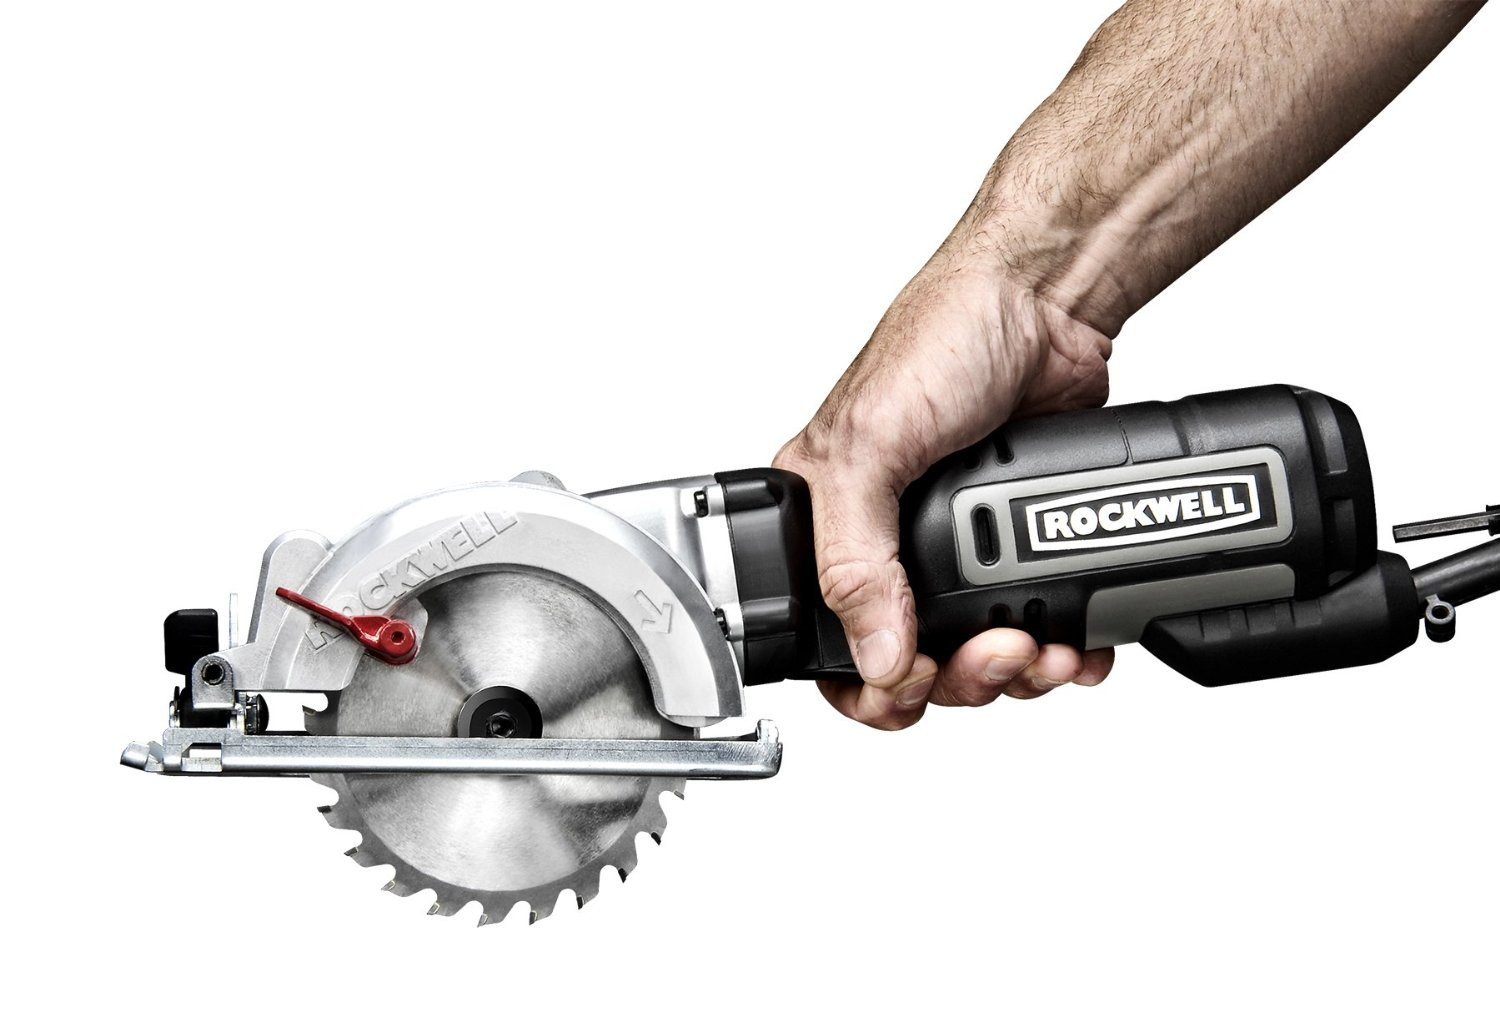 Grote Cirkelzaag The Best Small Circular Saw Best Wood Carving Tools